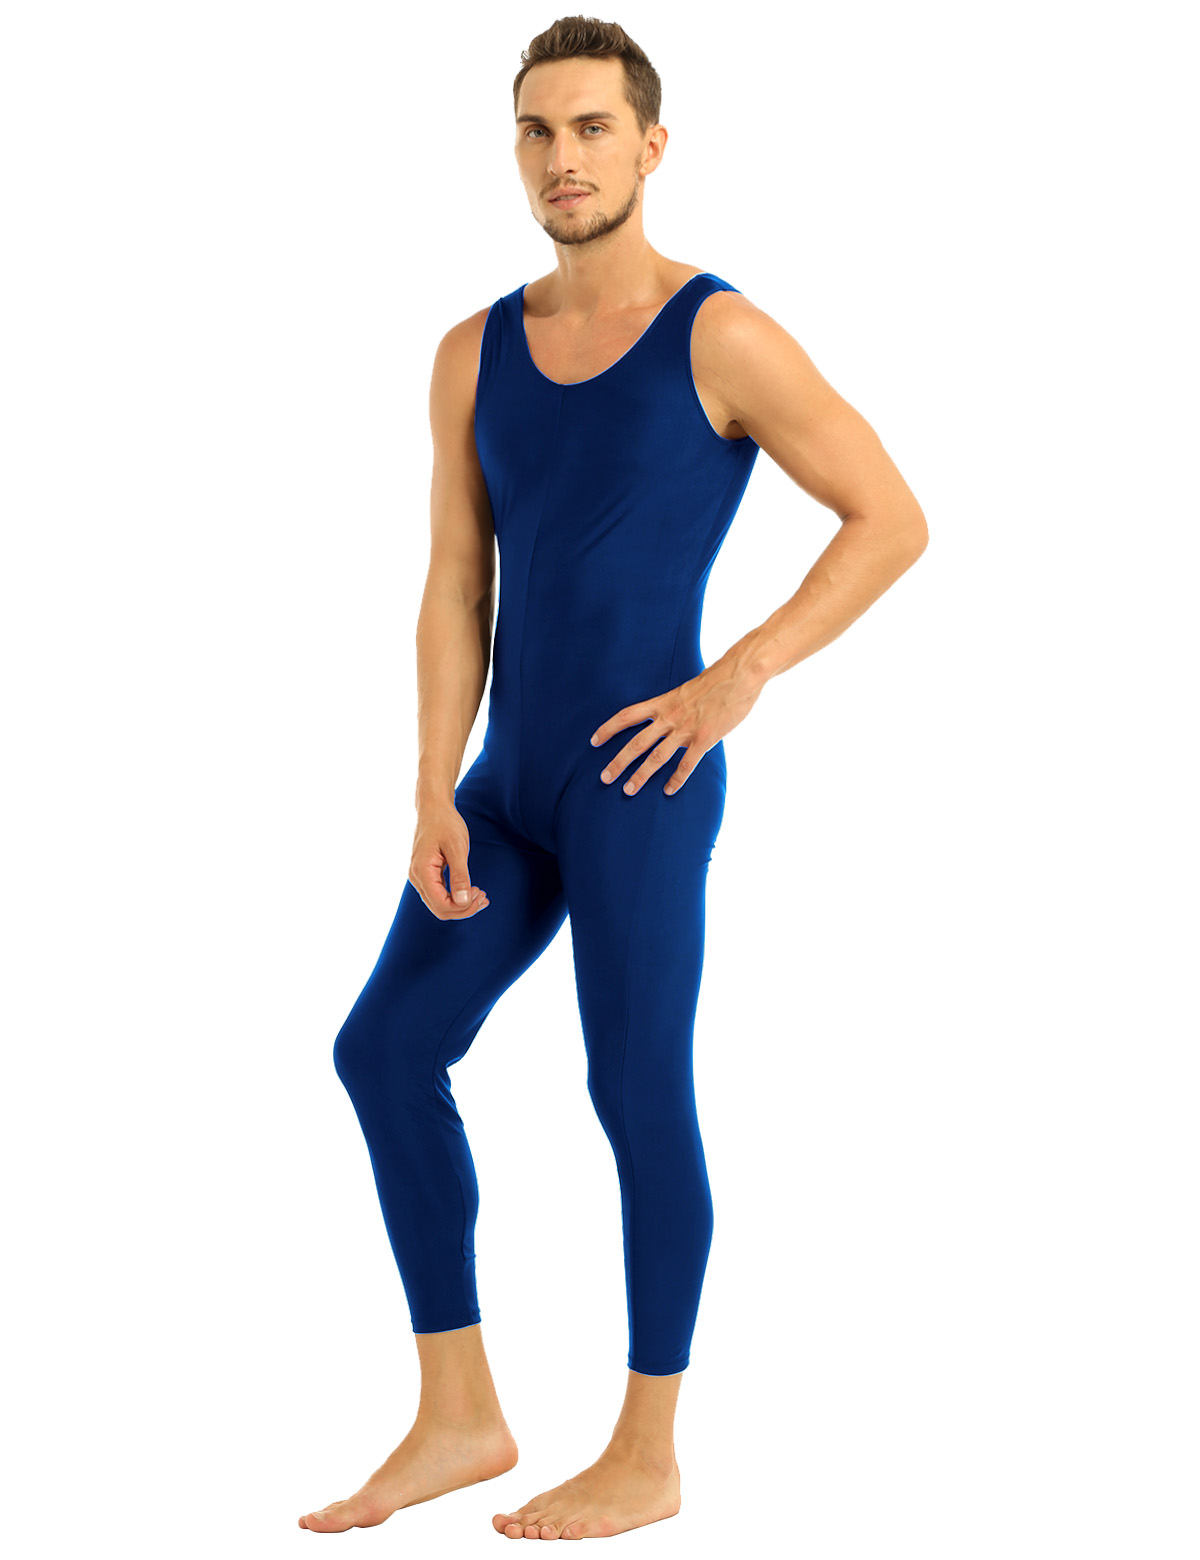 Men Sleeveless Leotard Bodysuit Lycra Tights Leggings for Ballet Dance Vest Teddy Sports Unitard Catsuit Male Dancewear Jumpsuit 23